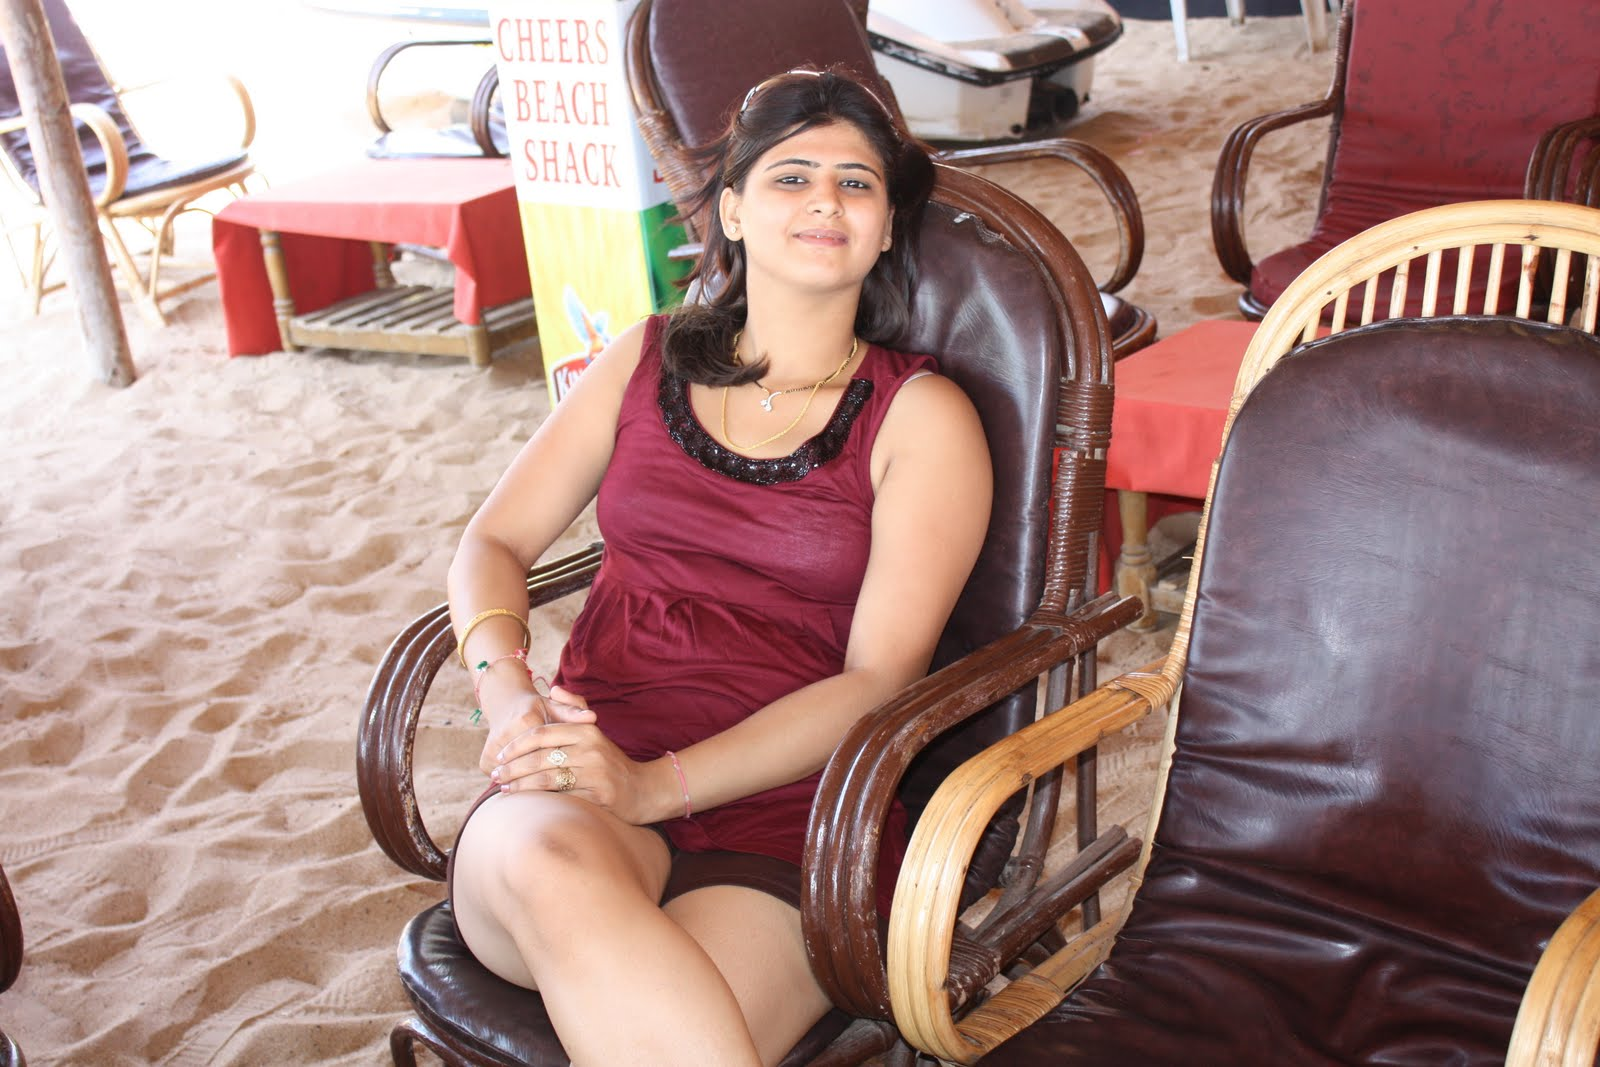 Hot Indian Girl Pictures At Goa Beach-7406